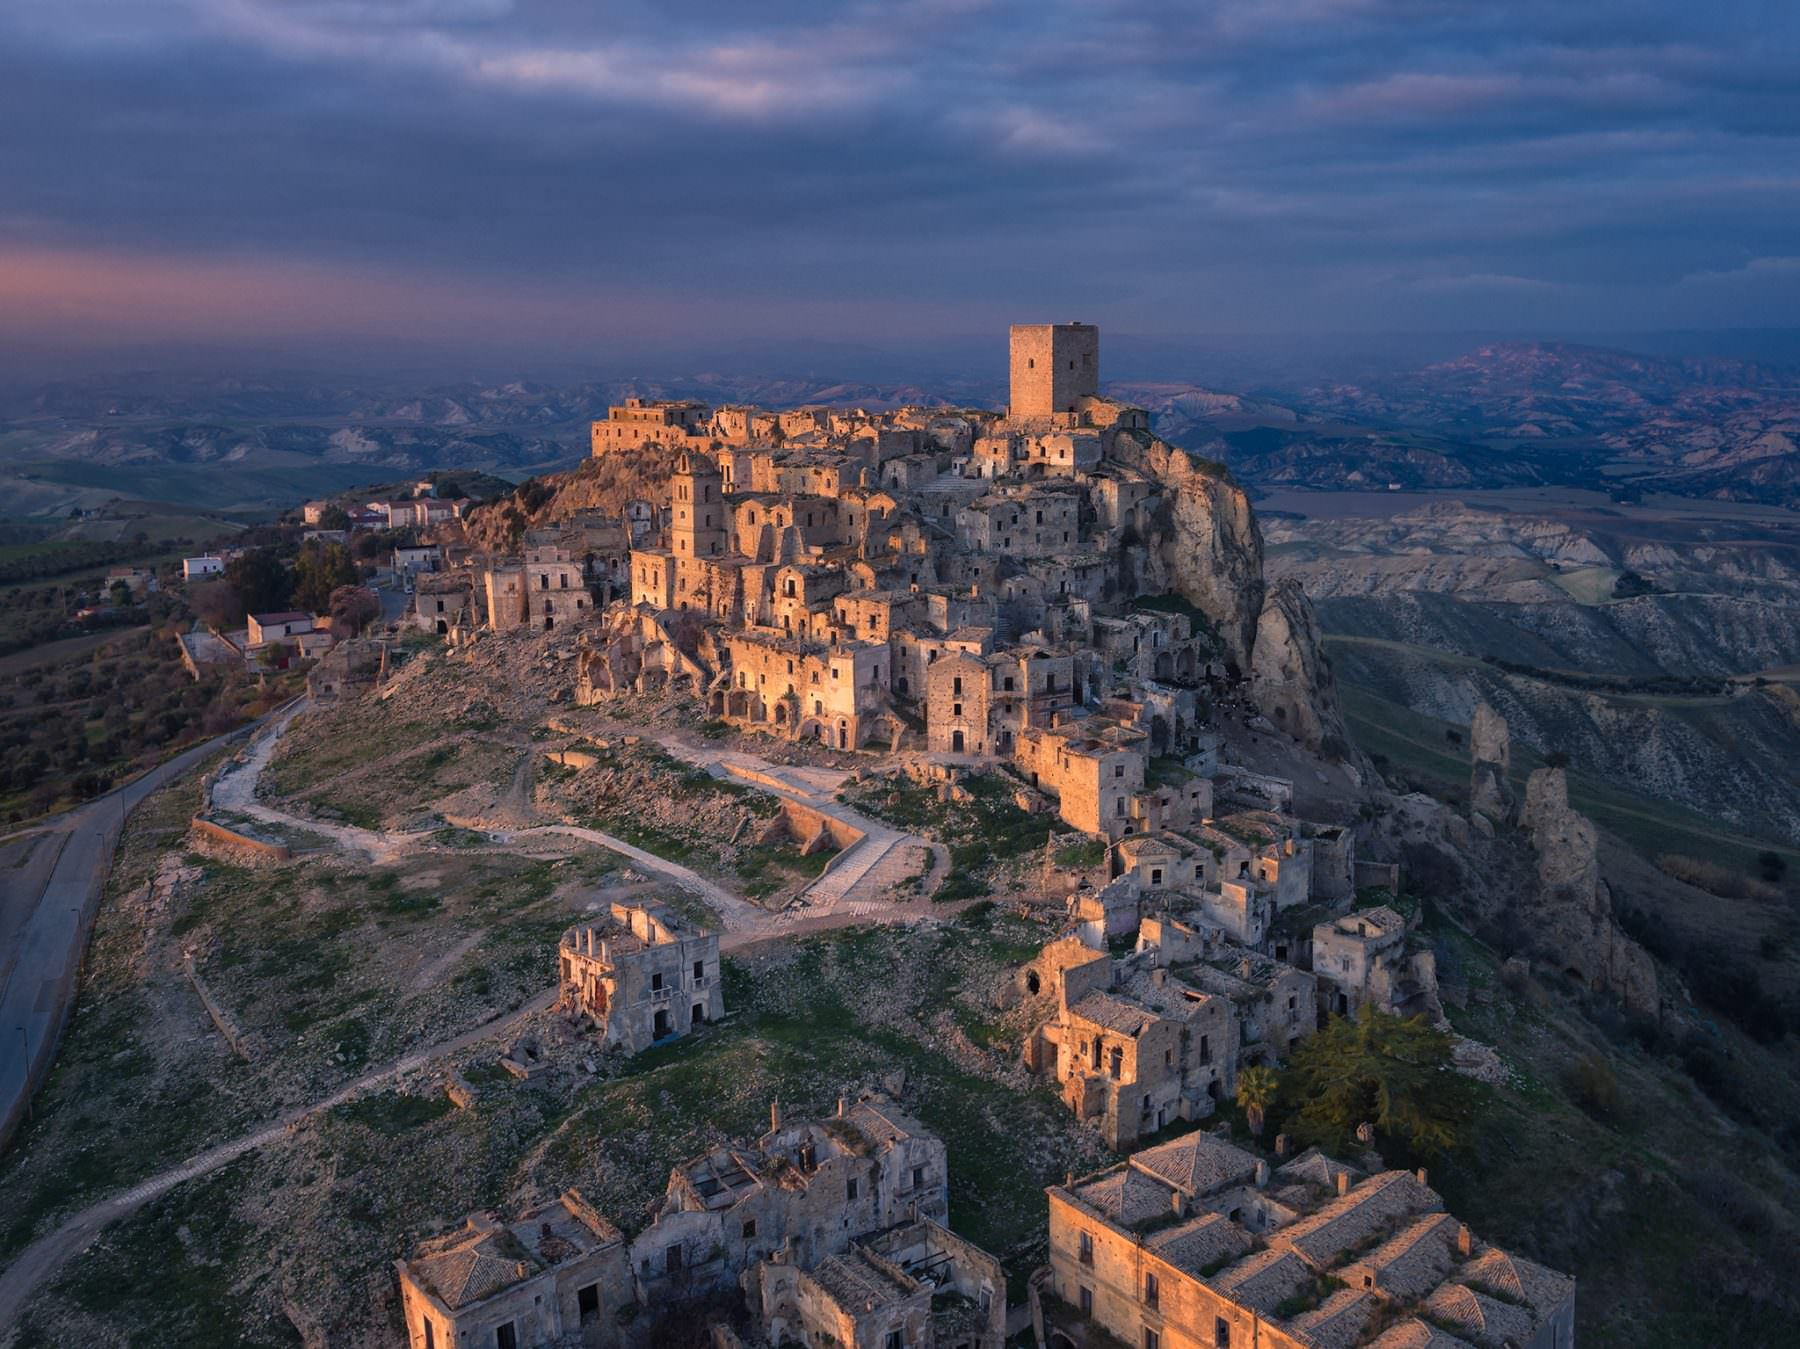 Italy, Basilicata, Ghost City, Craco, Aerial Photography by Gerry Pacher, Air-Shots.ch, Inspire Pro X5 Copyright © by Gerry Pacher